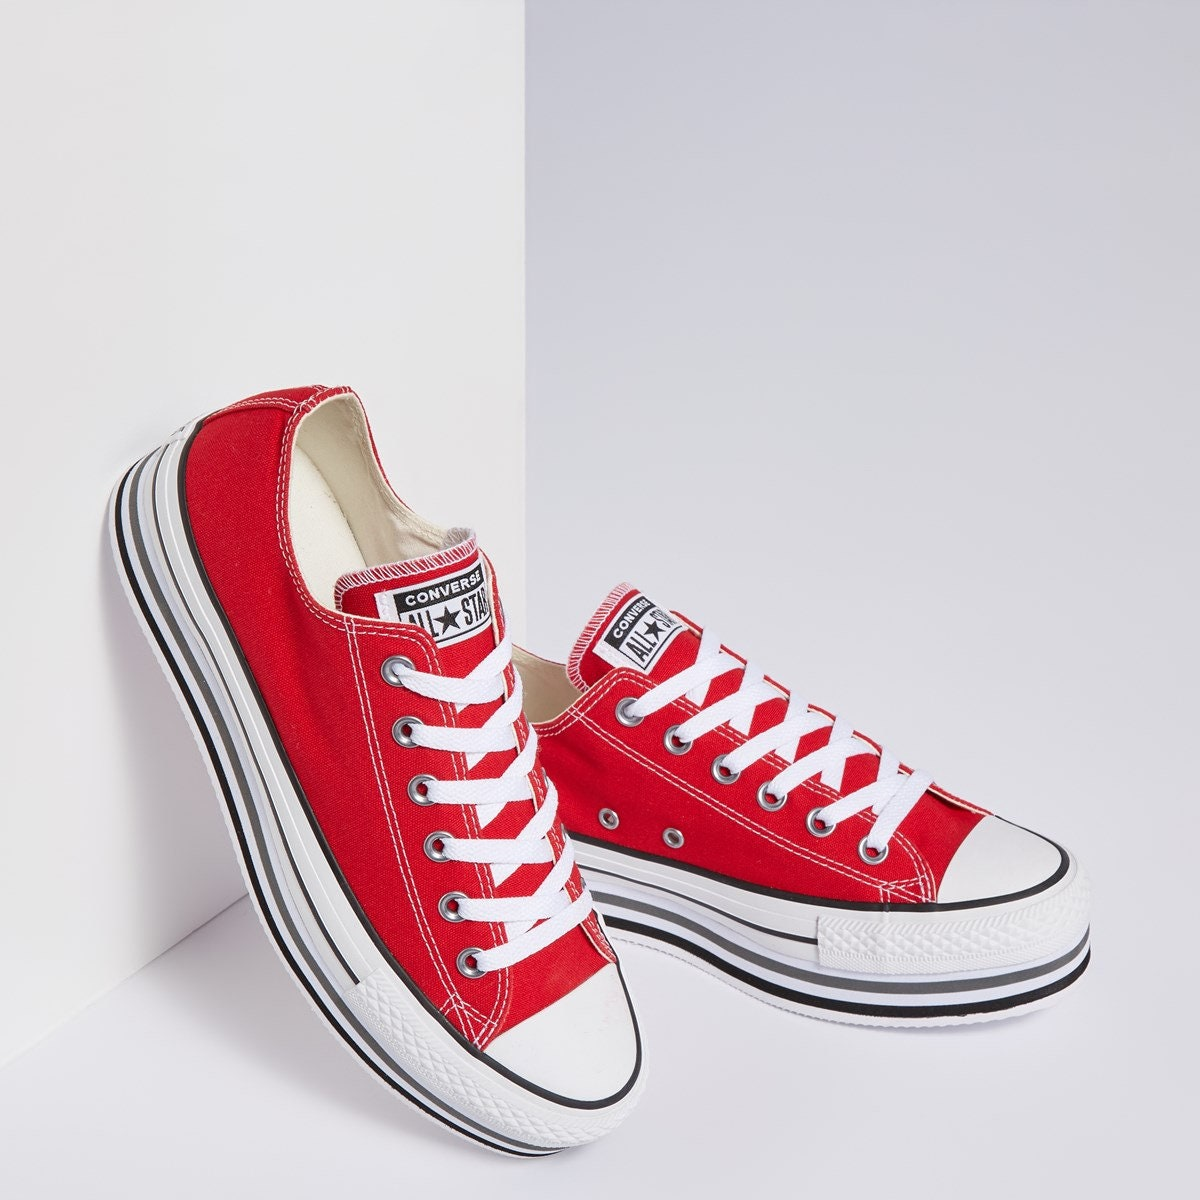 0744ced7f714 Red Converse Platform heels wedge Classic Cherry Lift Canvas Low Top Club  w  Swarovski Crystal Chuck Taylor All Star Wedding Sneakers Shoes